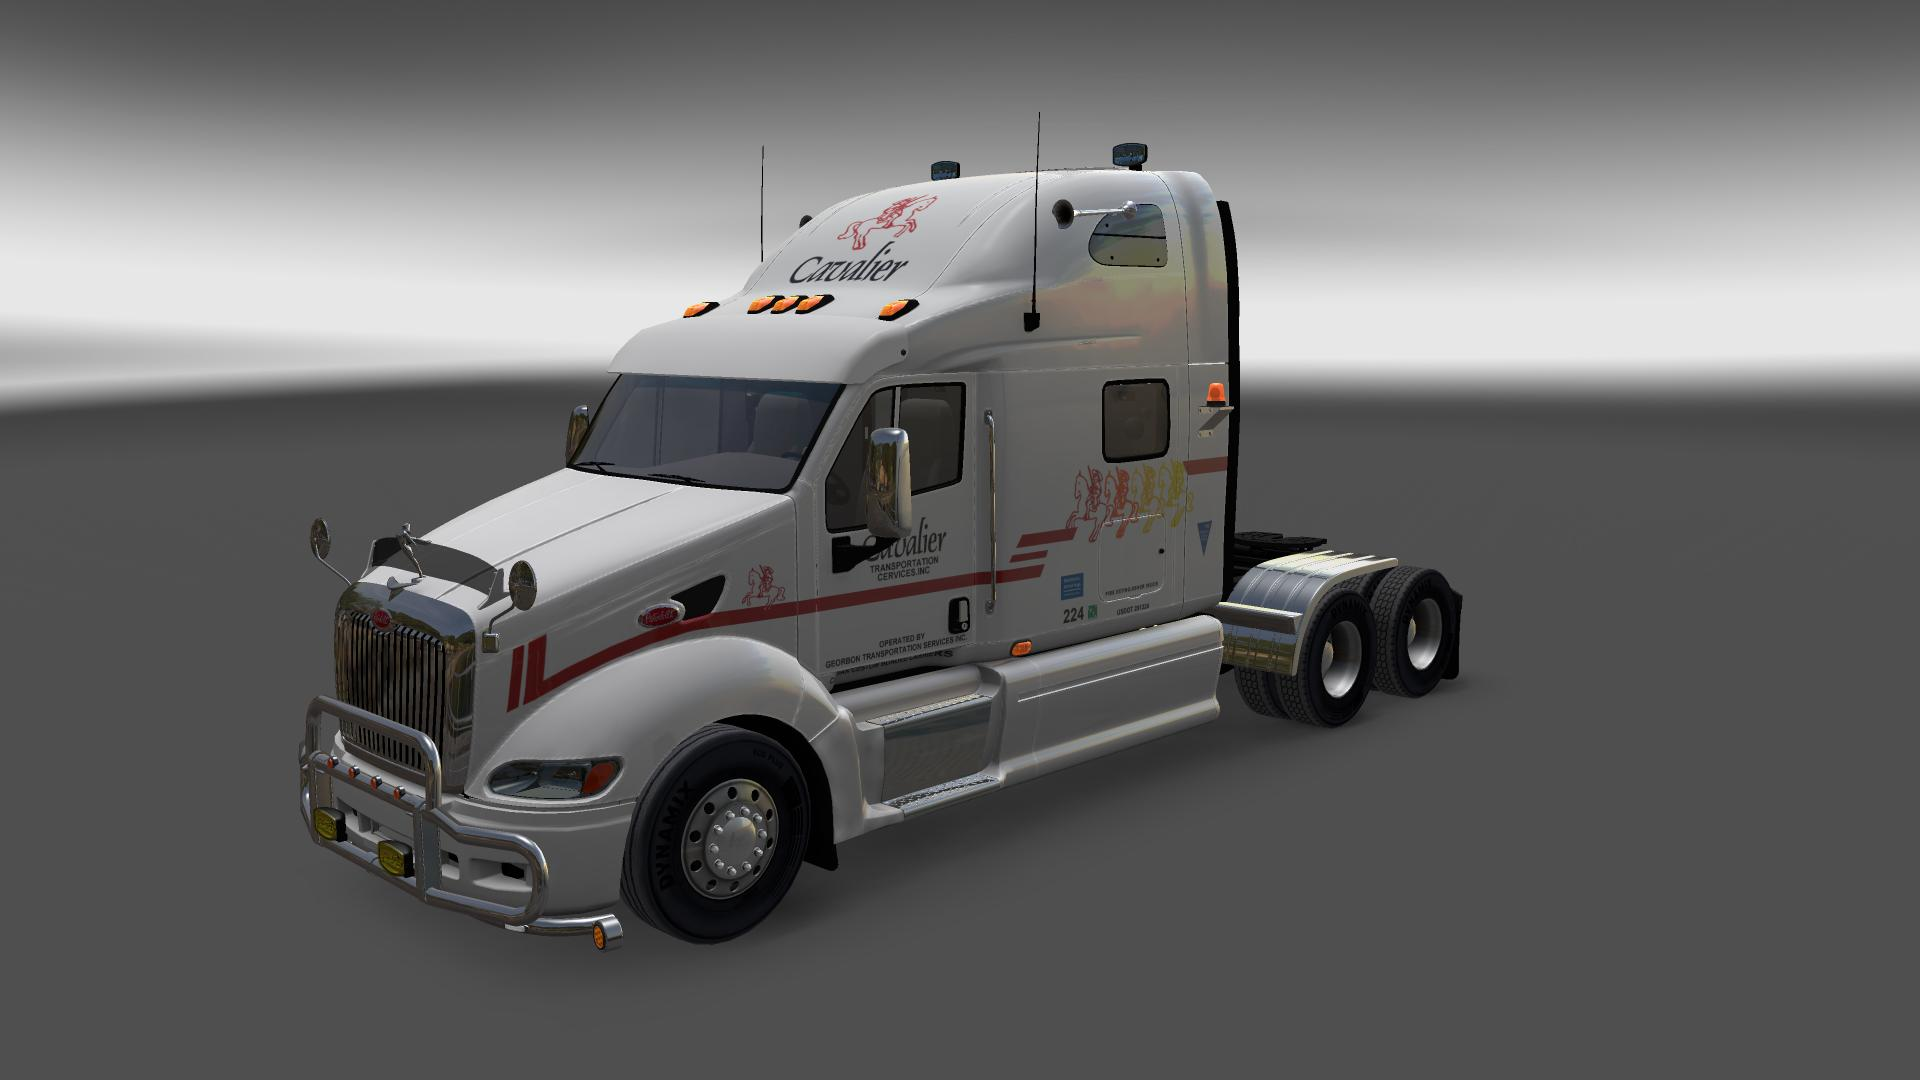 Package skin for Peterbilt 387 1 4 x - 1 4 2 2s - Modhub us